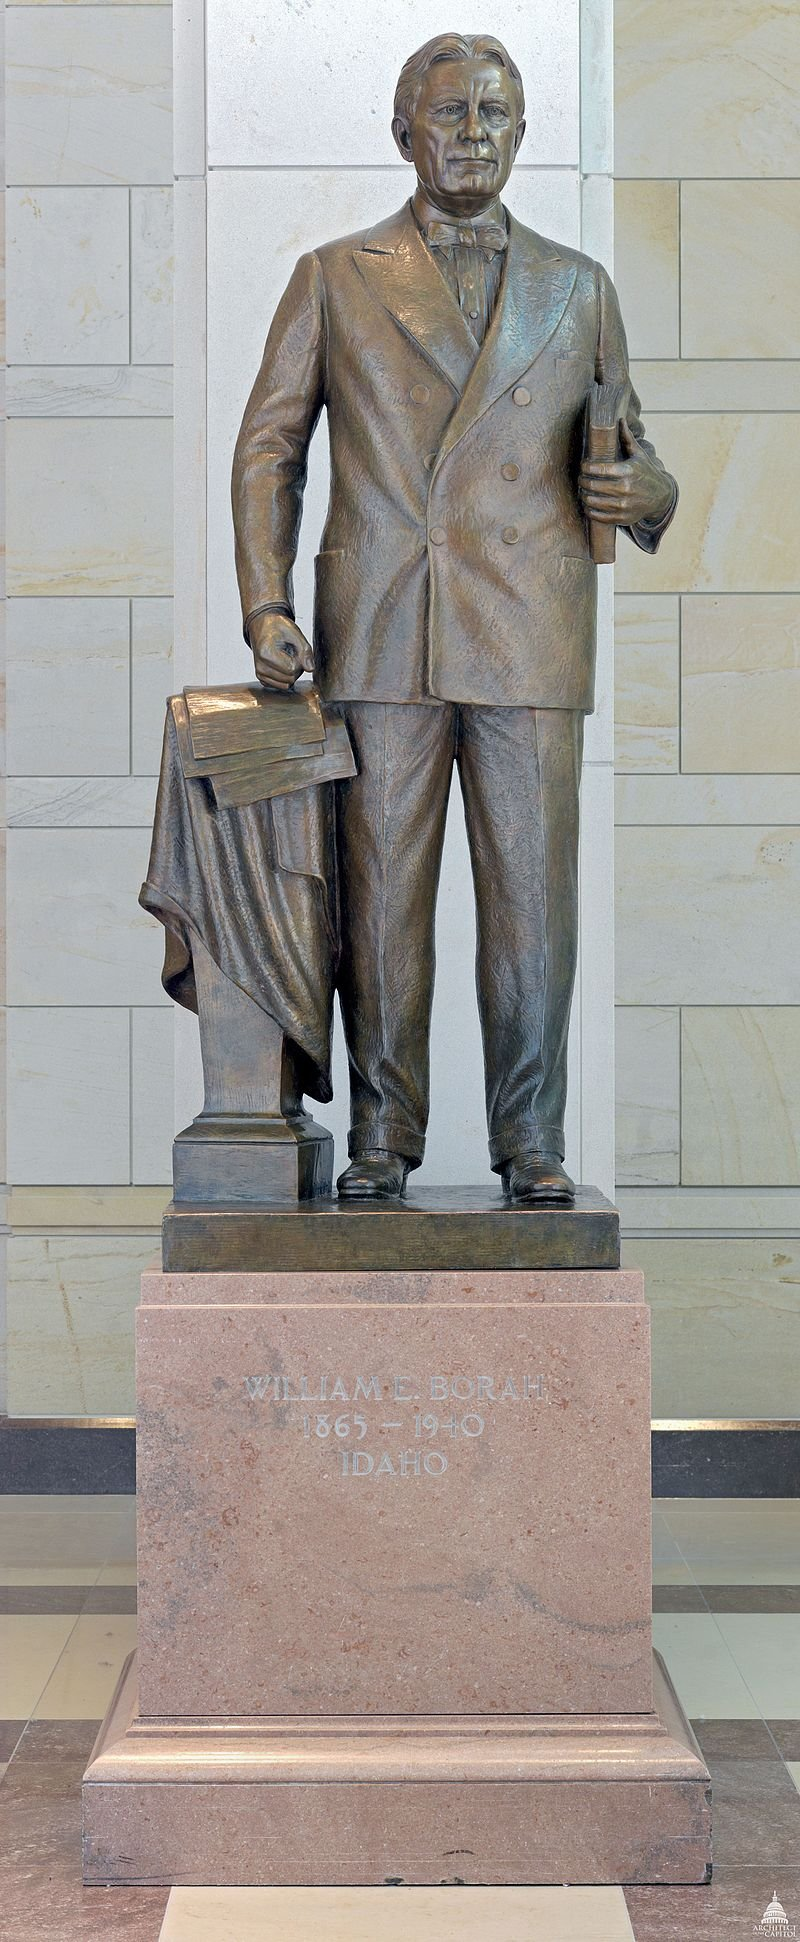 Statuary Hall in the United States Capitol features a statue of Borah by Bryant Baker, created in 1947. Photo courtesy of the Architect of the Capitol.